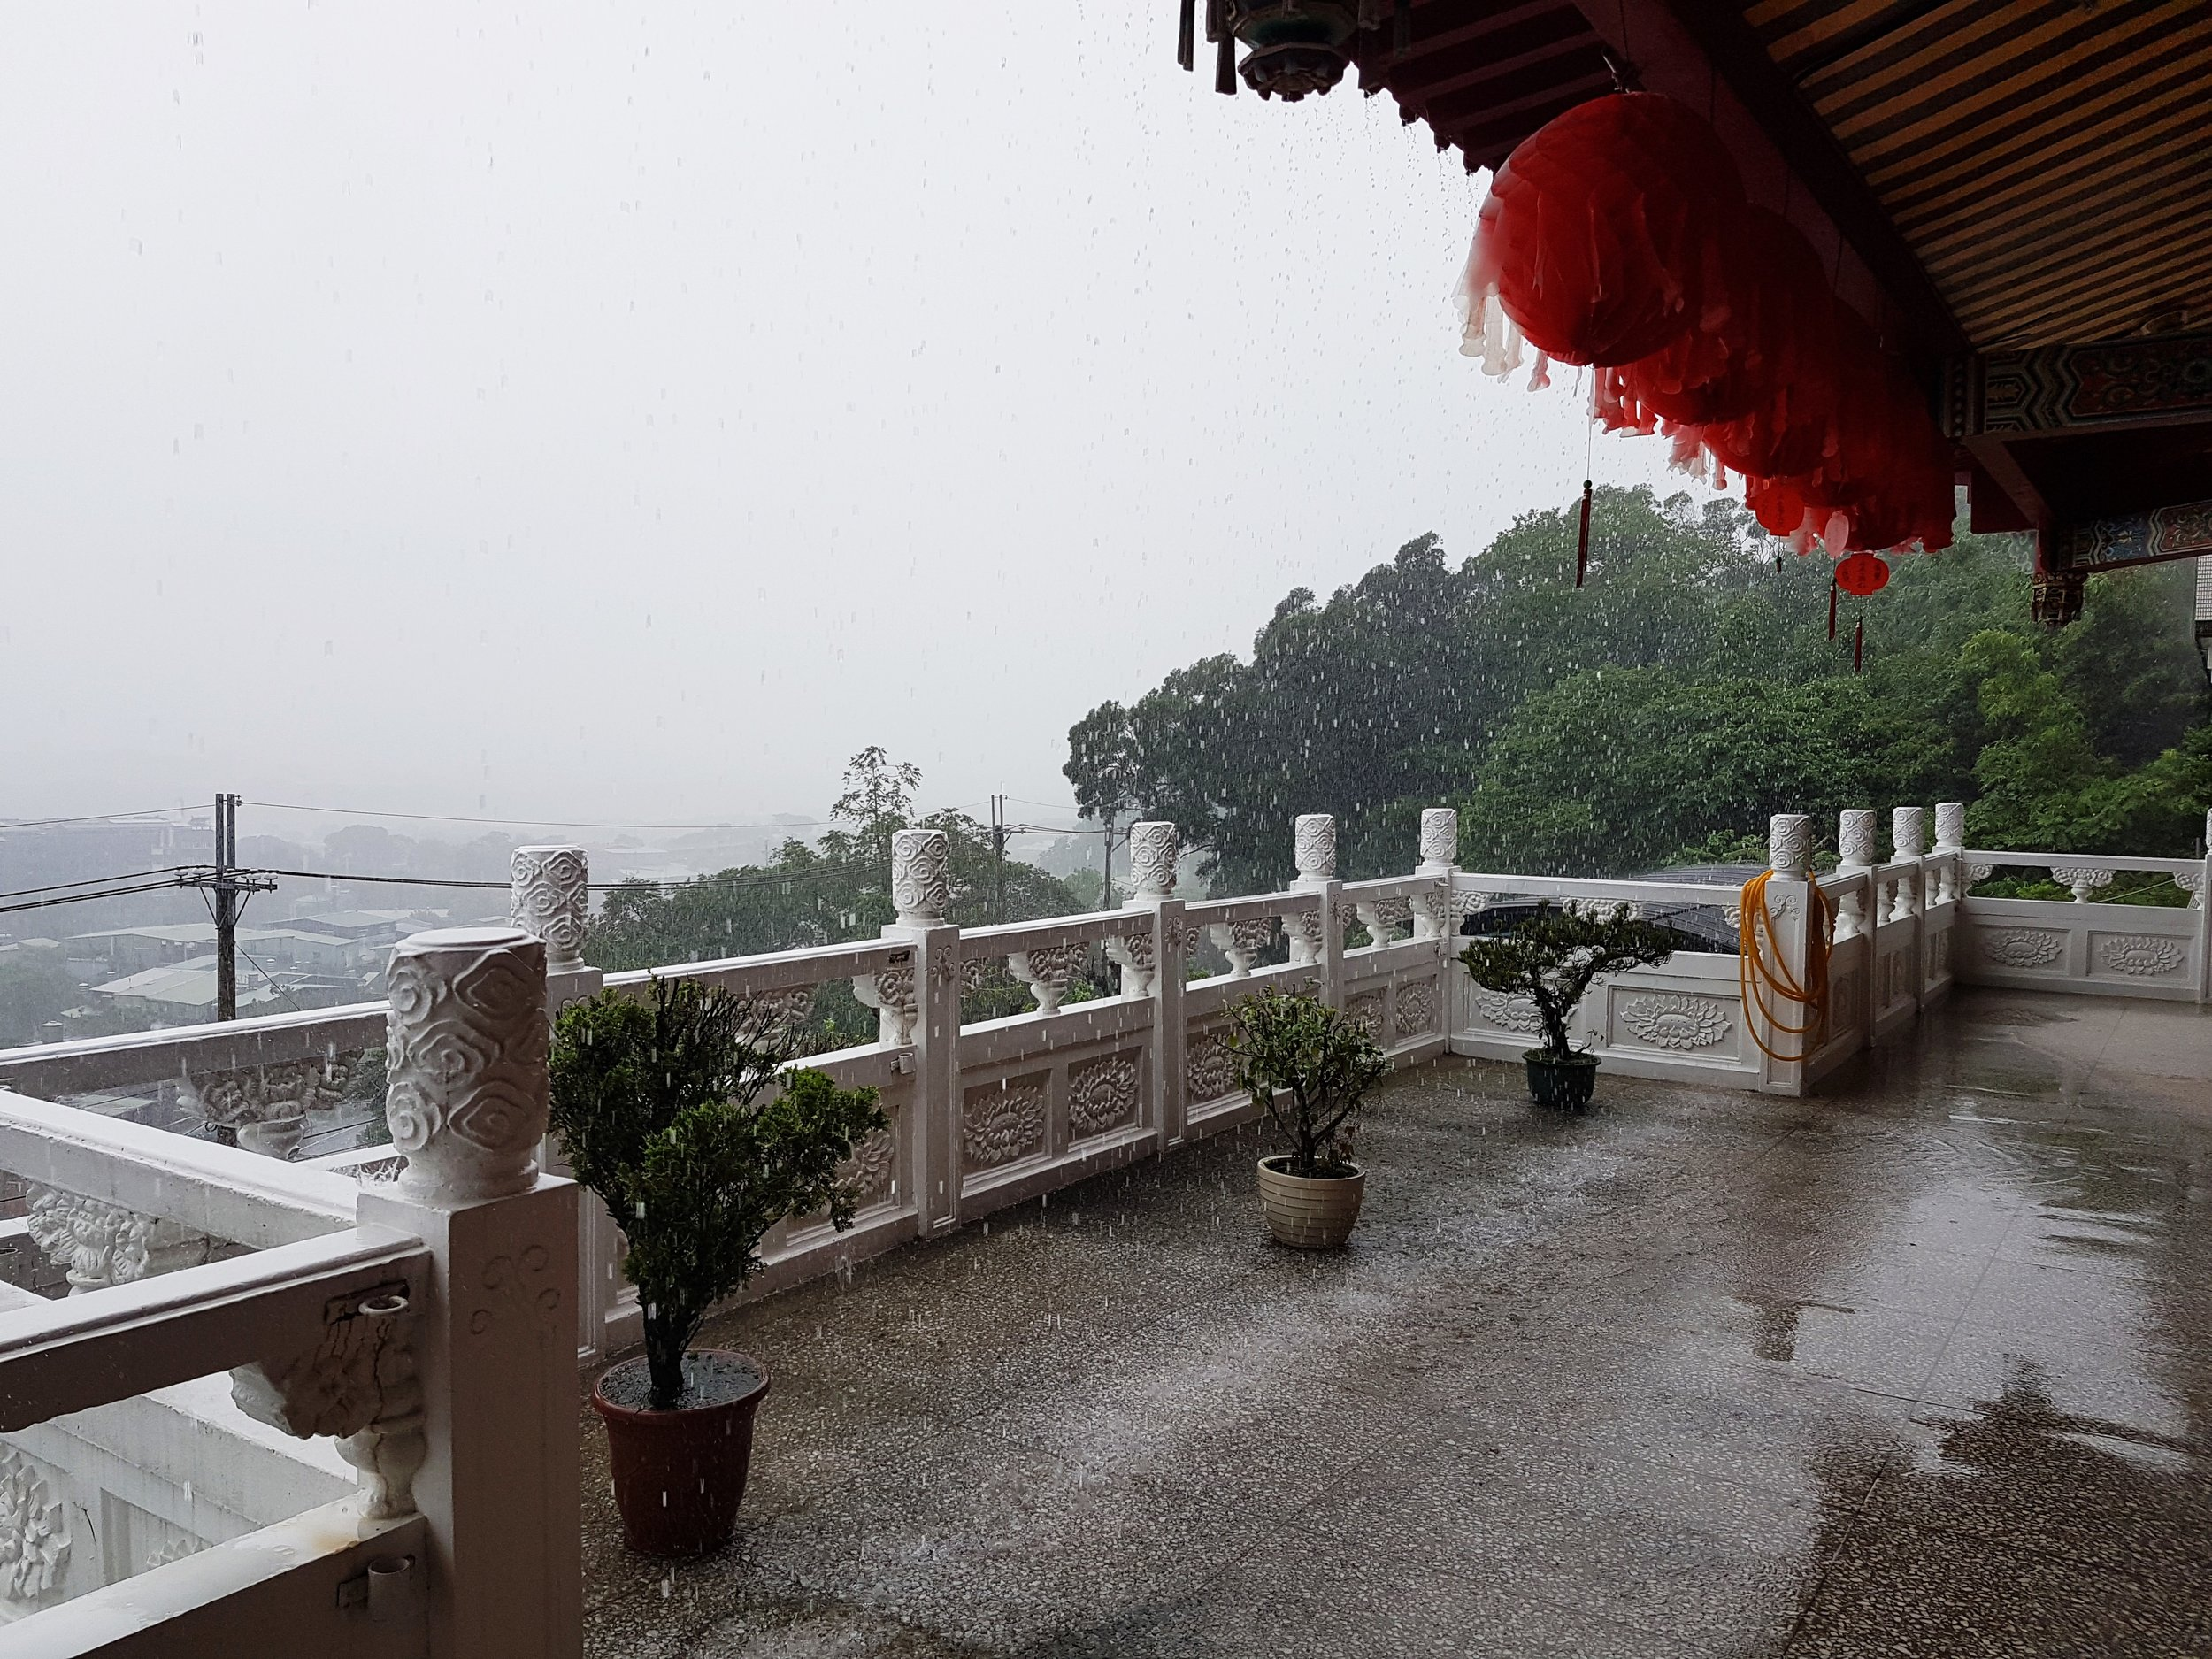 Whiteout in a downpour at the temple